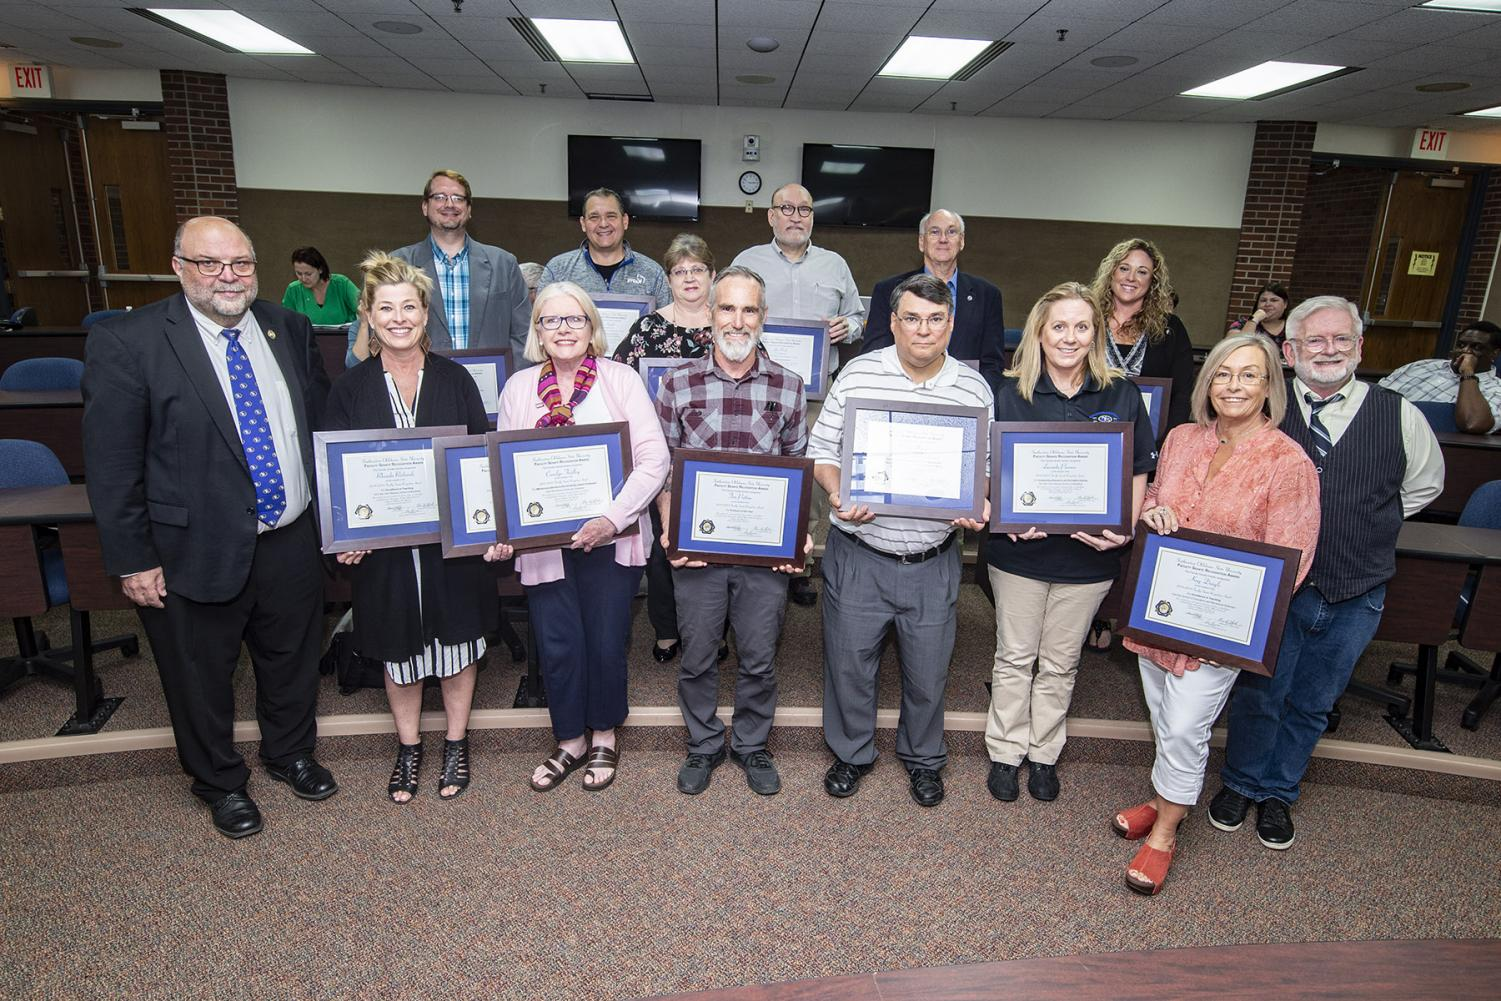 Faculty Senate presents Recognition Awards for Excellence